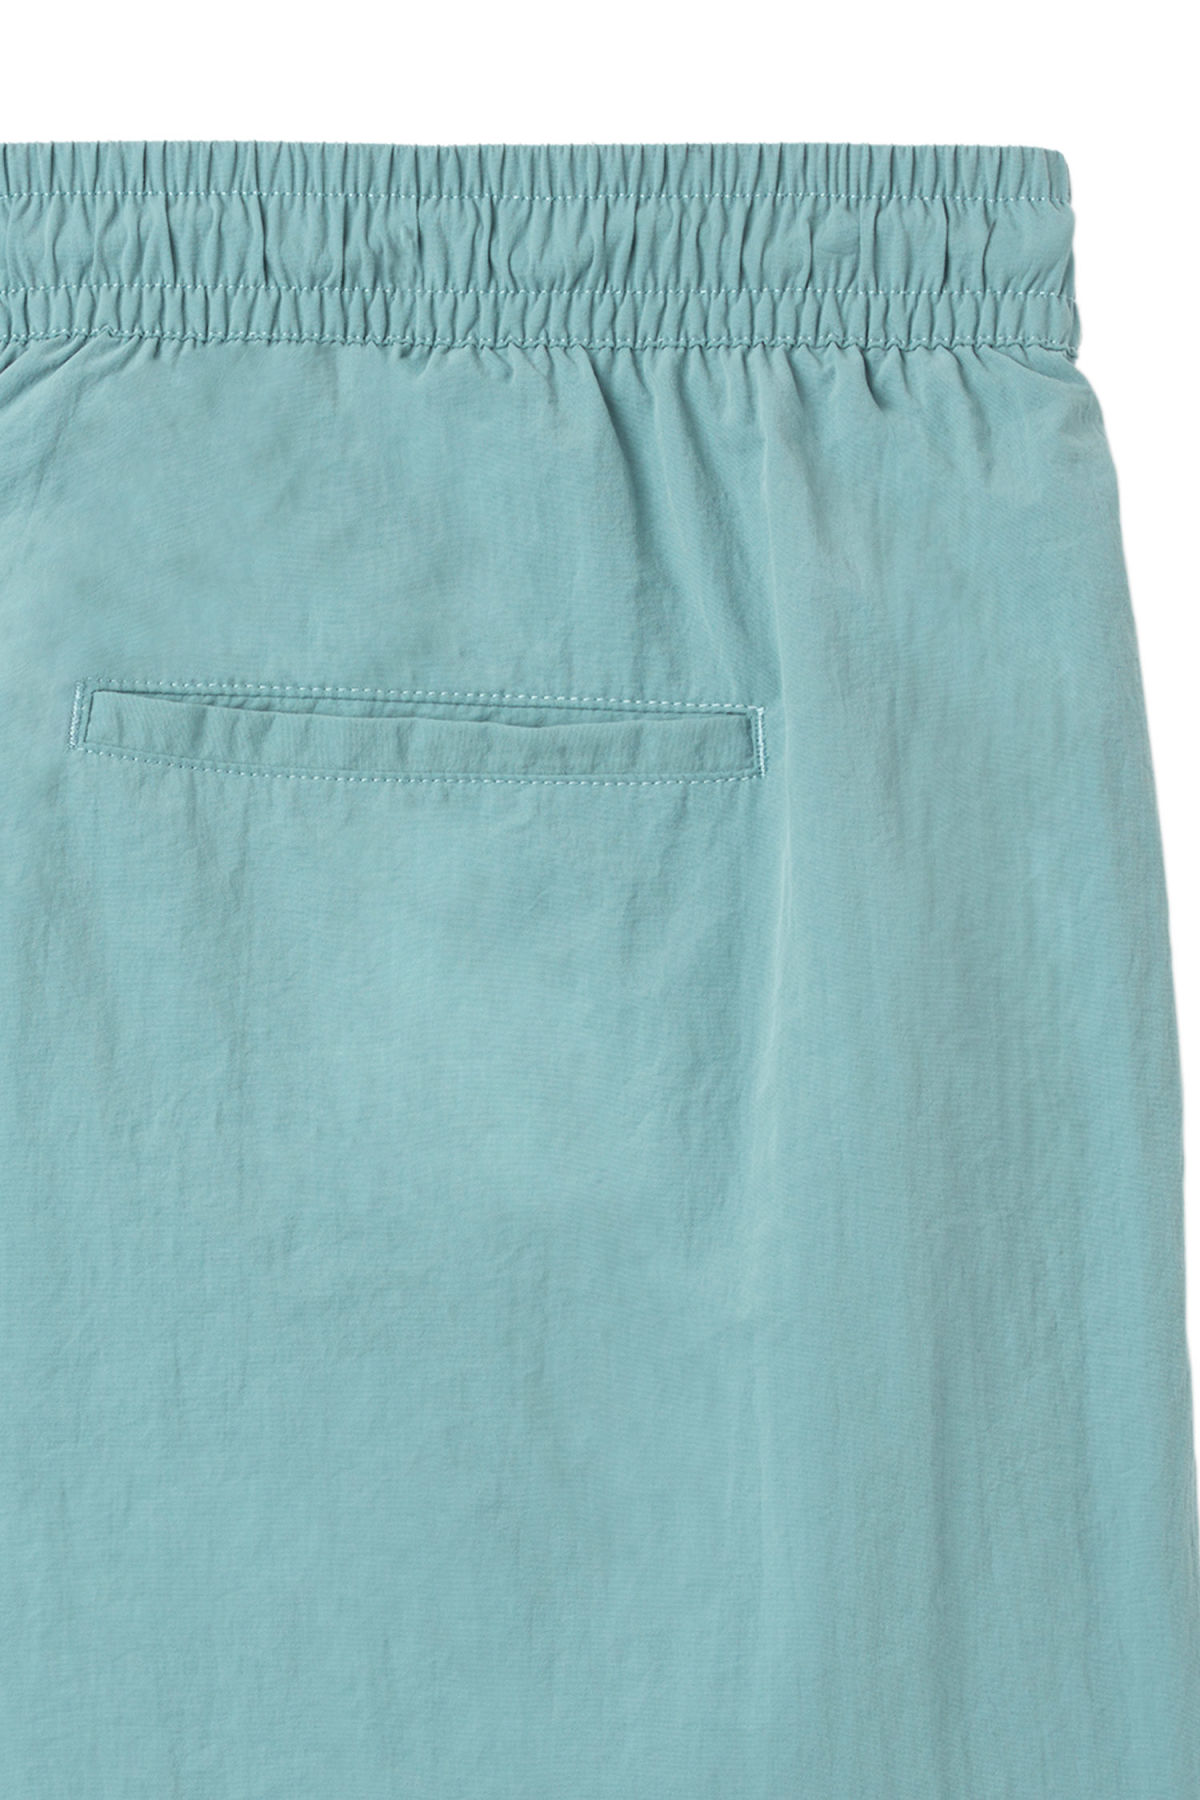 Detailed image of Weekday tan structure swim shorts in turquoise